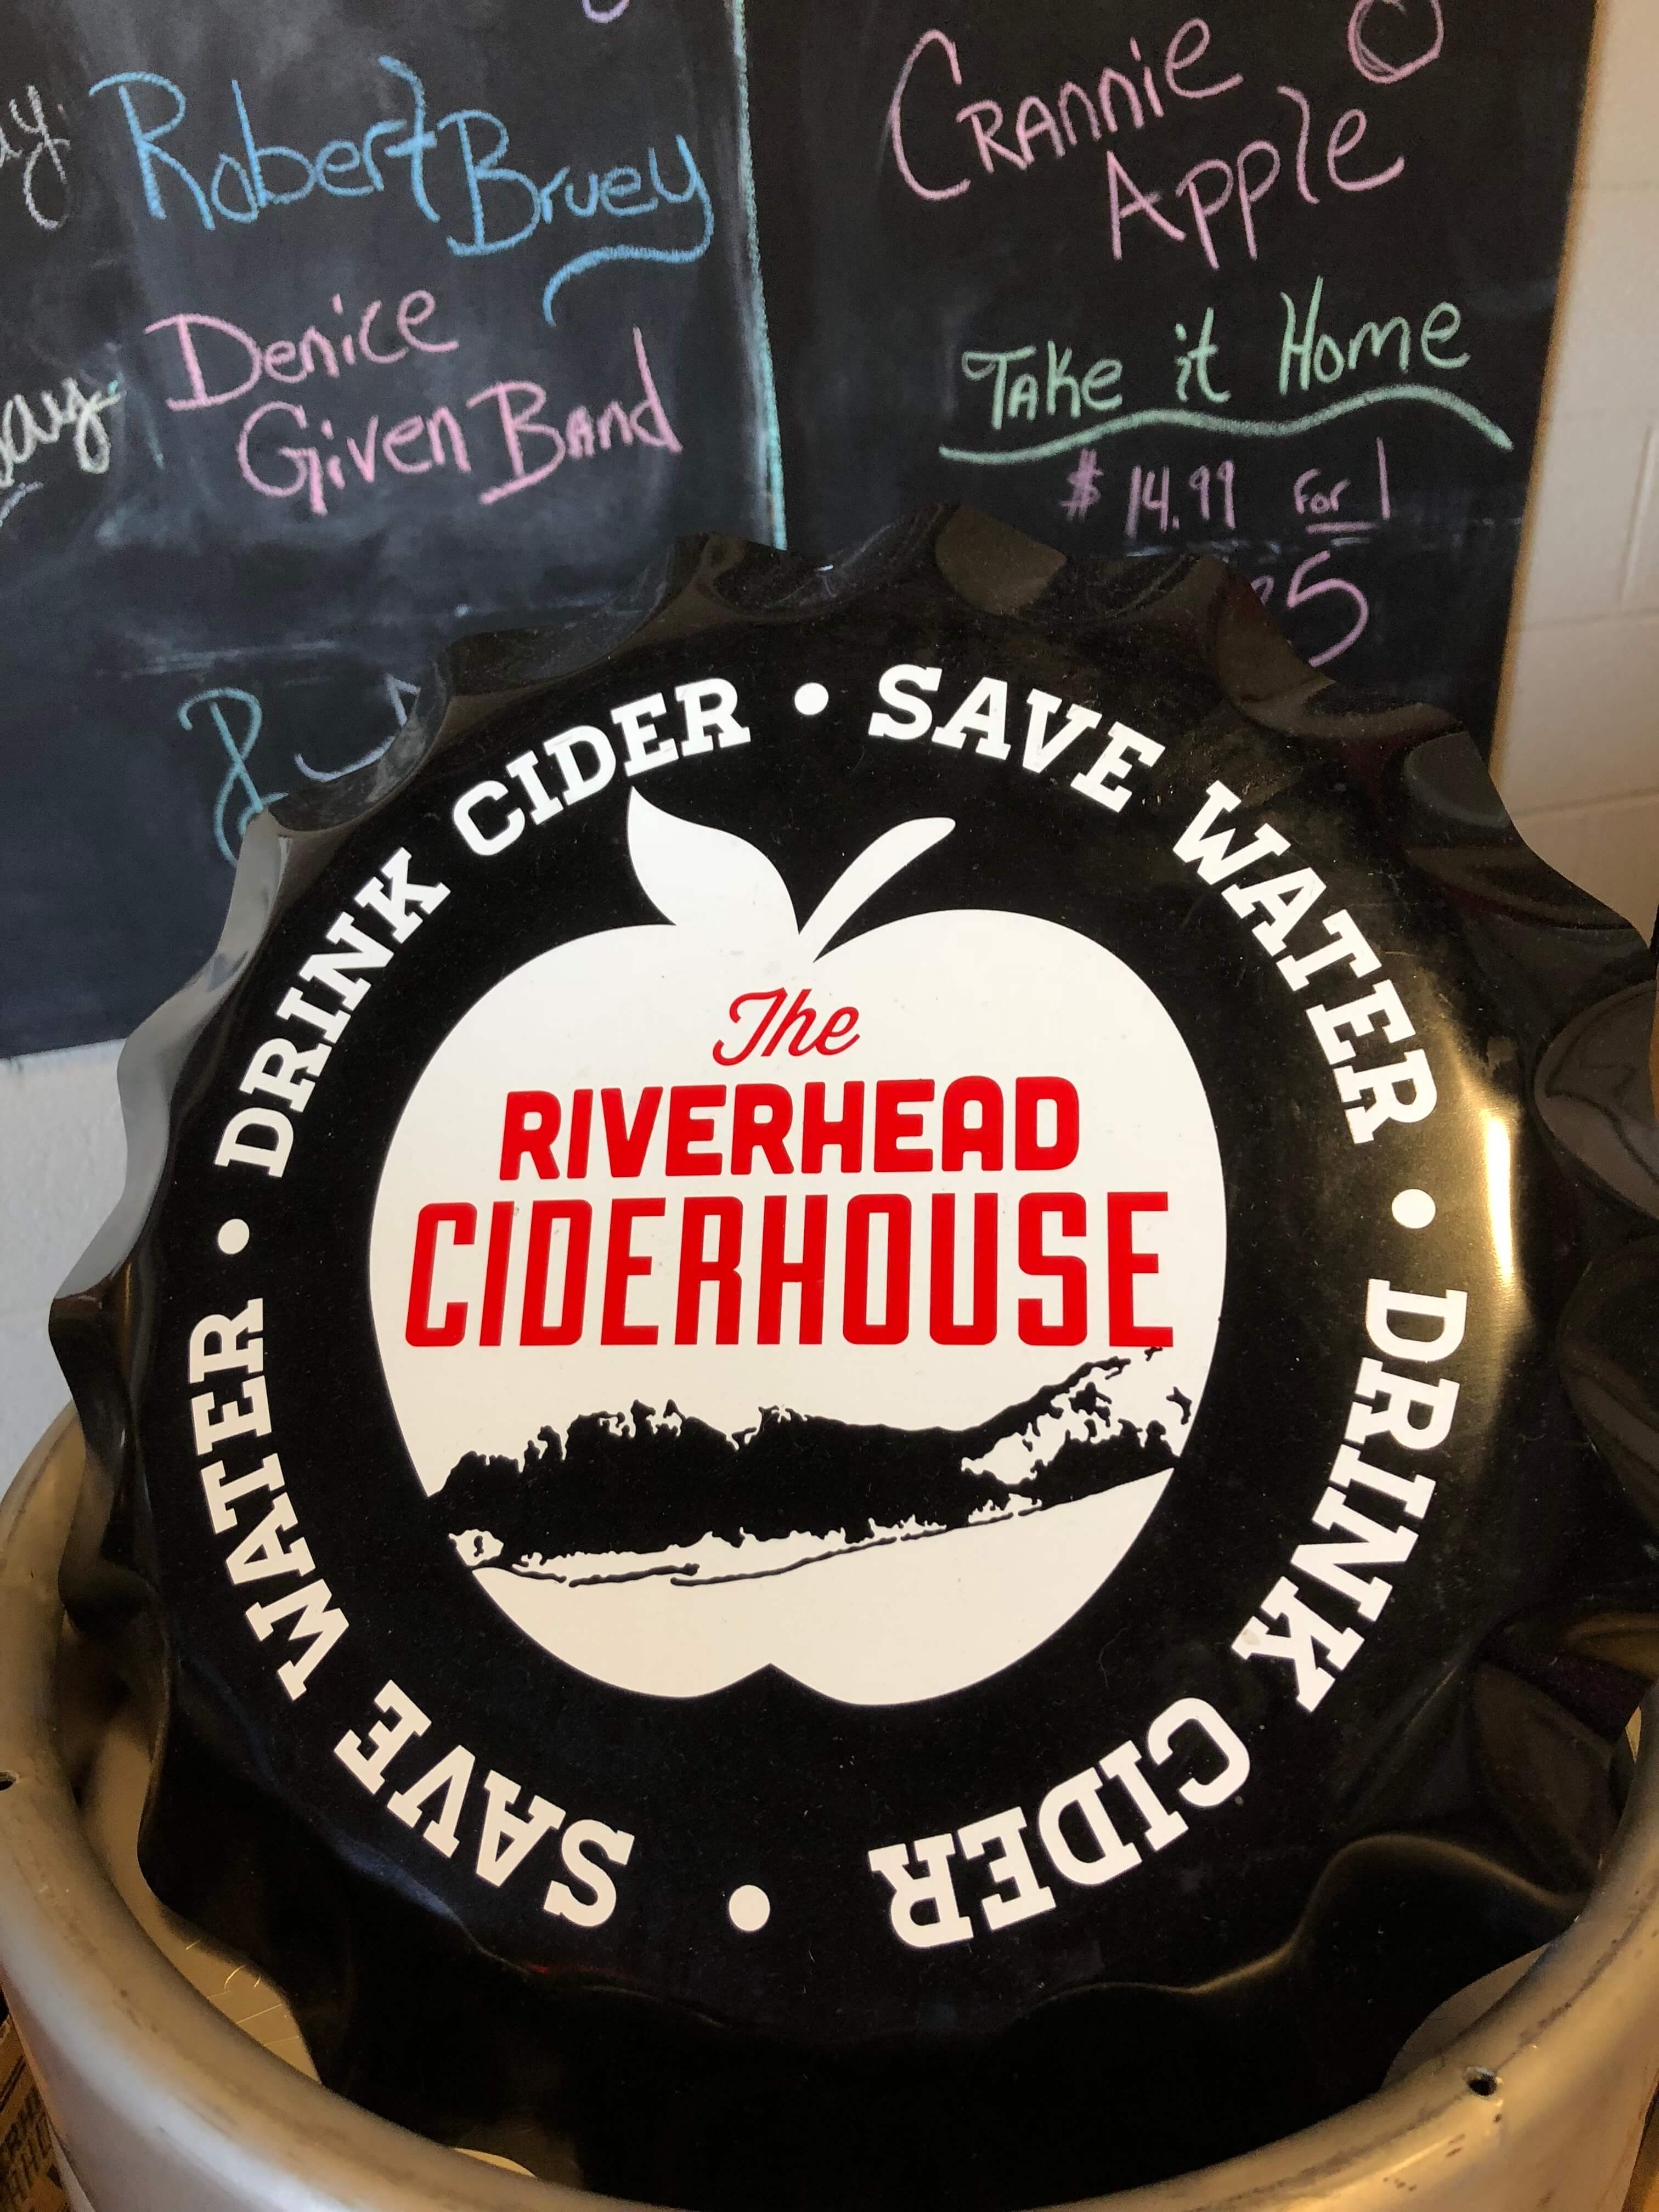 The Riverhead Ciderhouse north fork